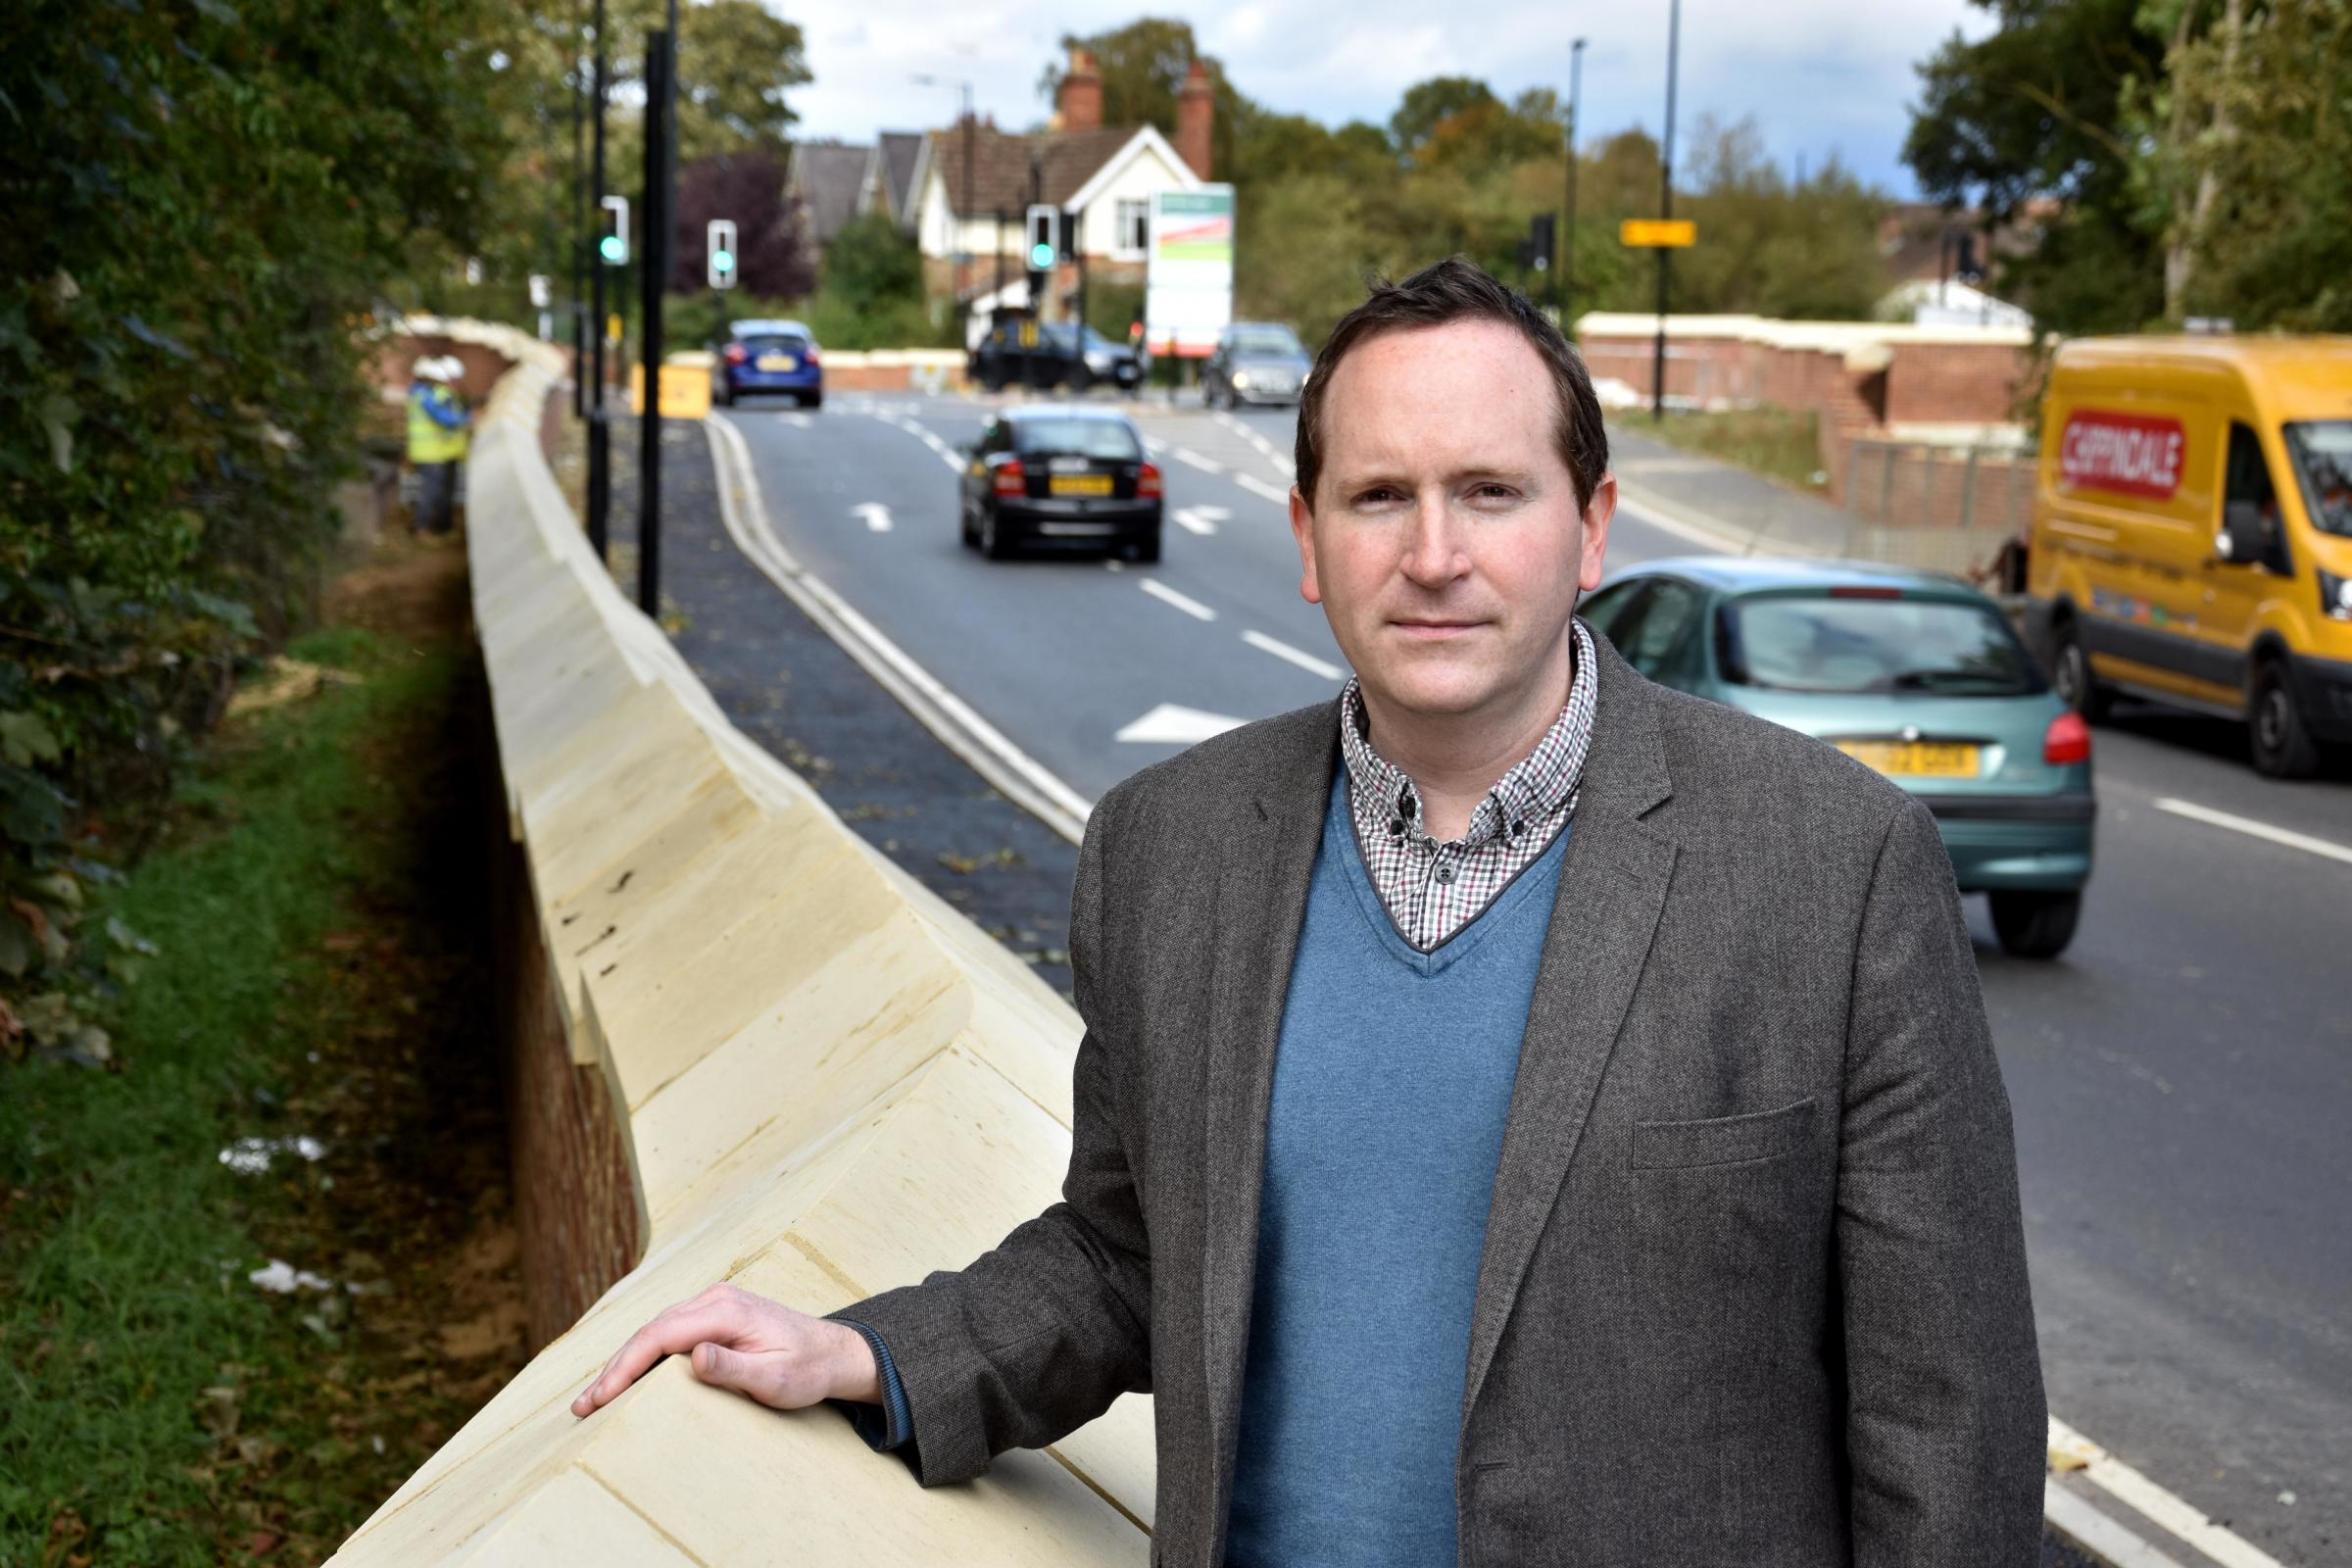 Row erupts over flood defences for key road in Fulford, York